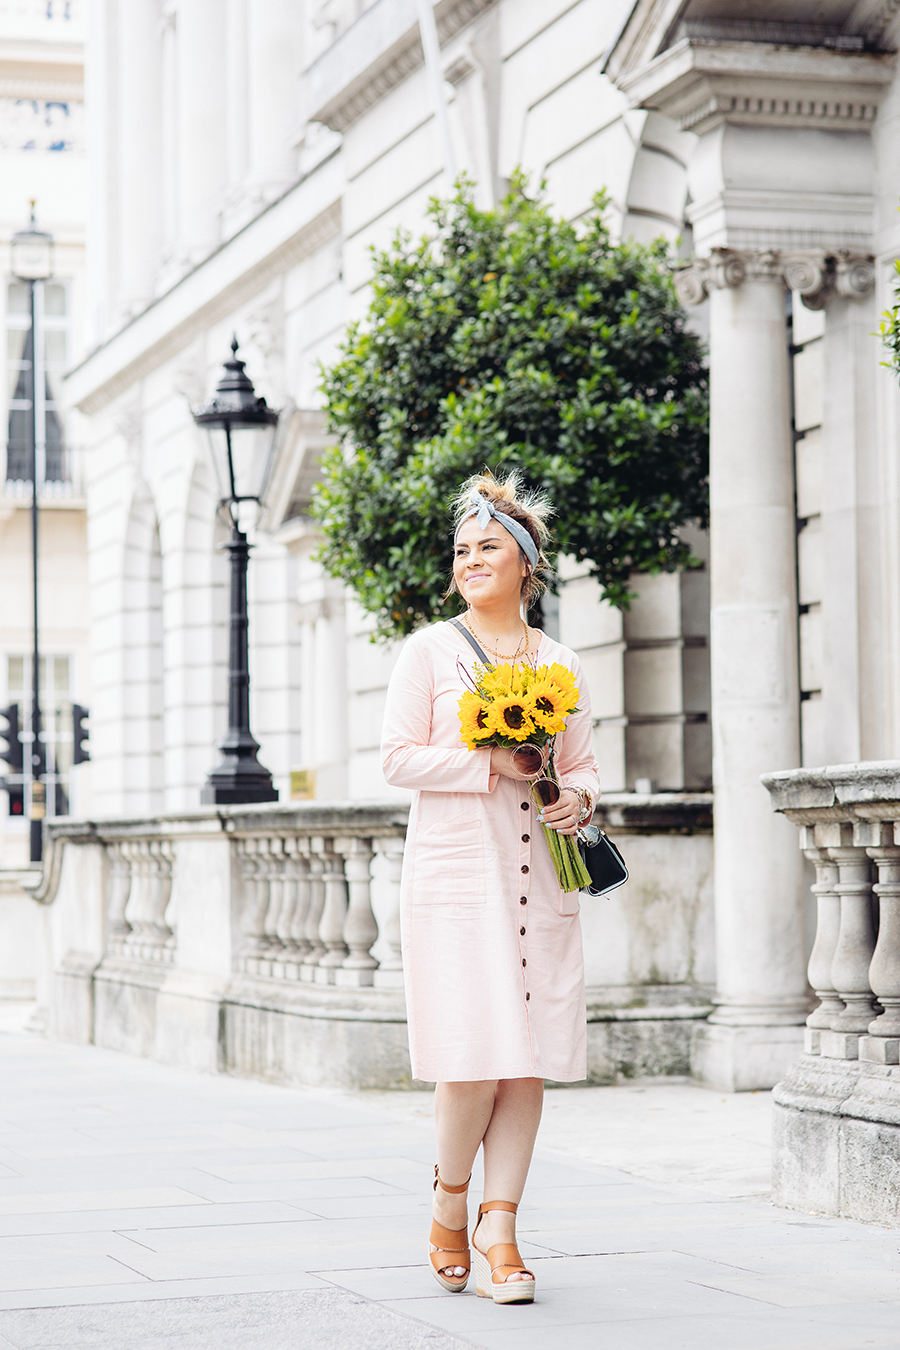 pink dress and sunflowers